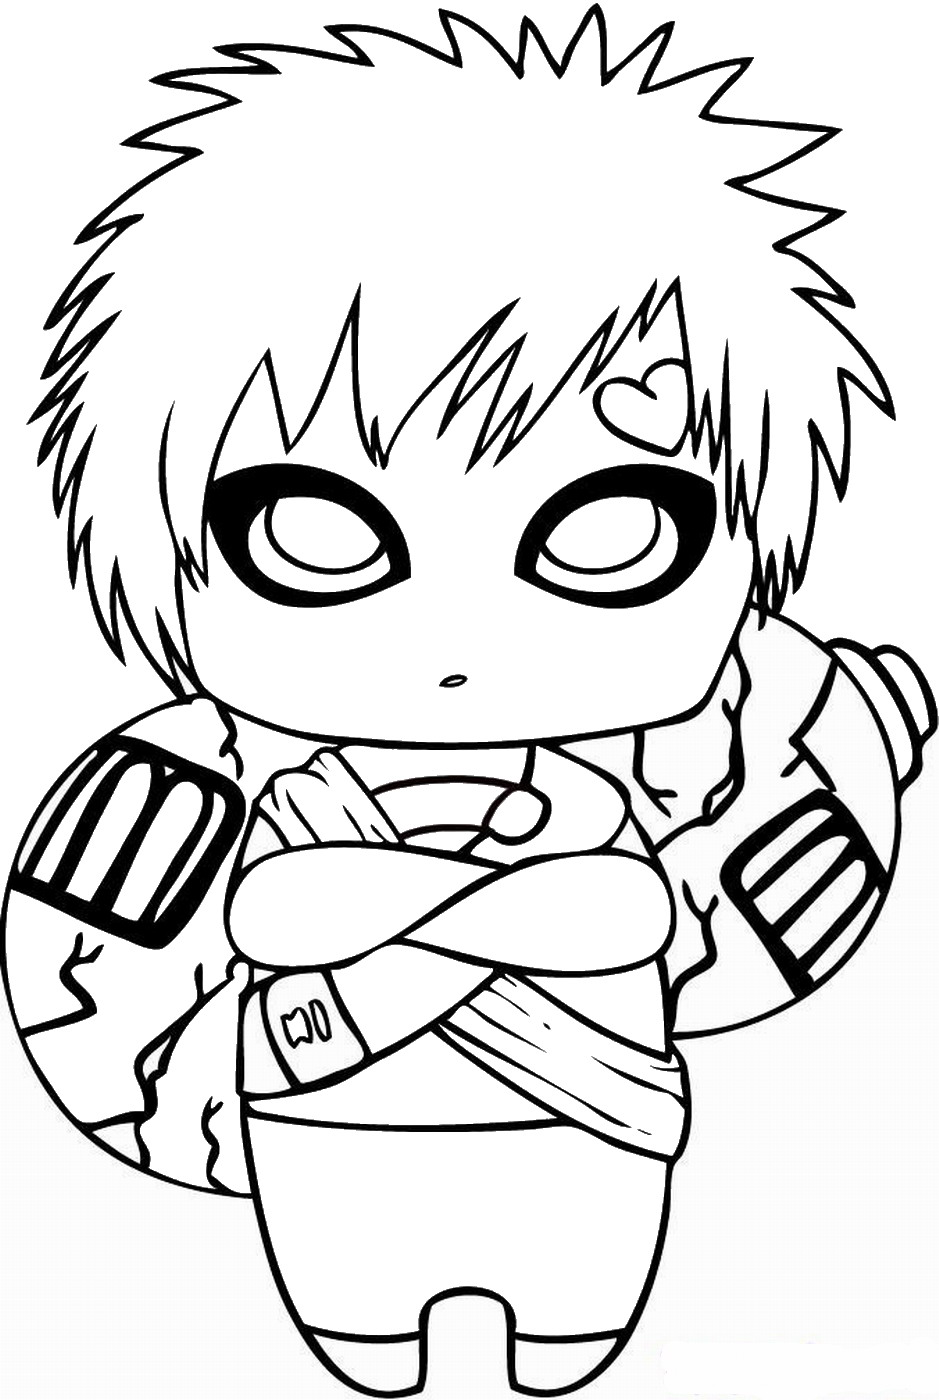 naruto coloring pages naruto to color for children naruto kids coloring pages pages coloring naruto